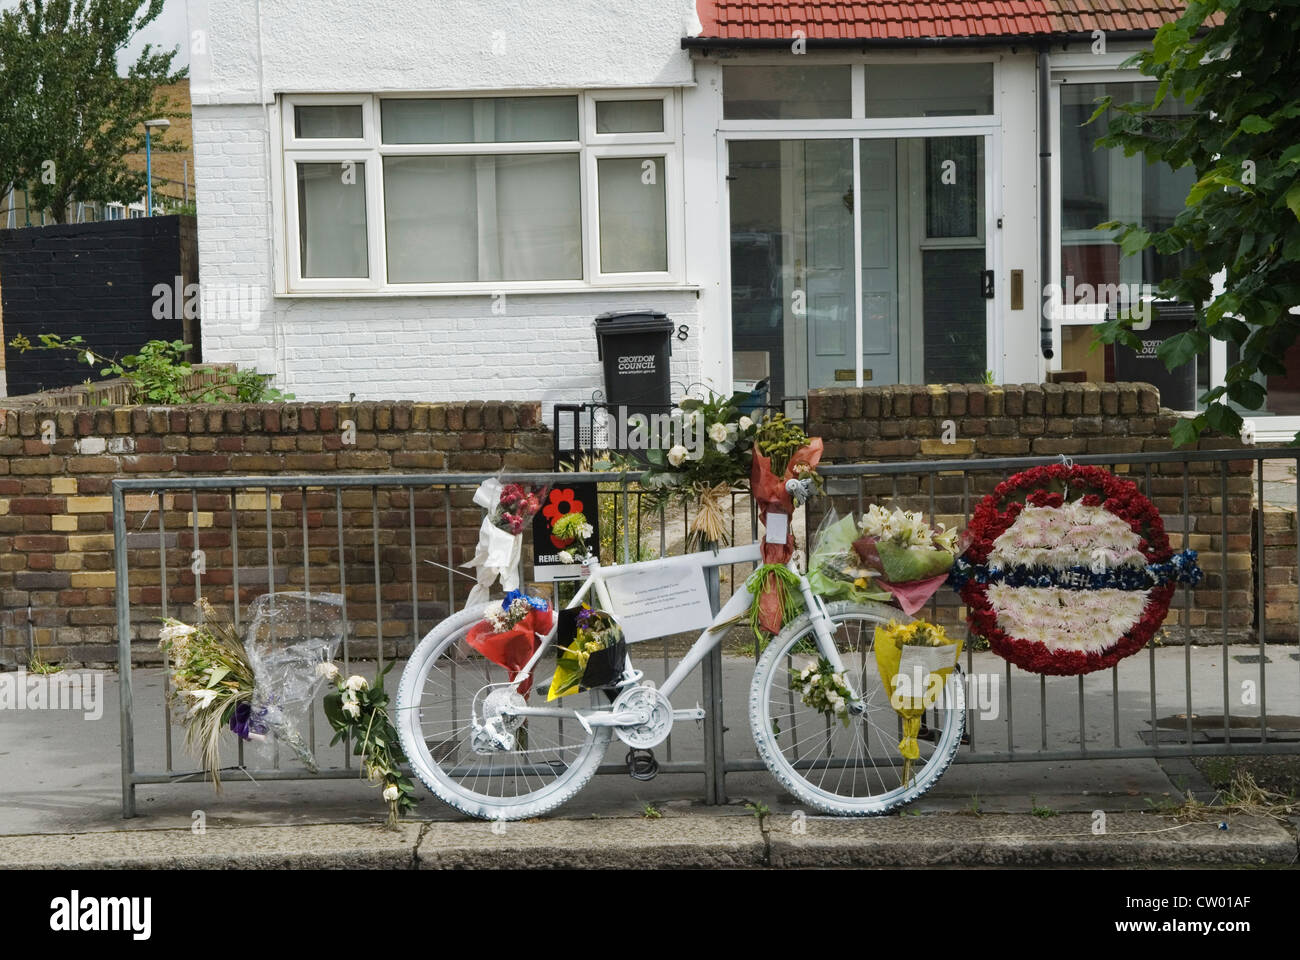 Cyclist died Memento Mori UK HOMER SYKES - Stock Image